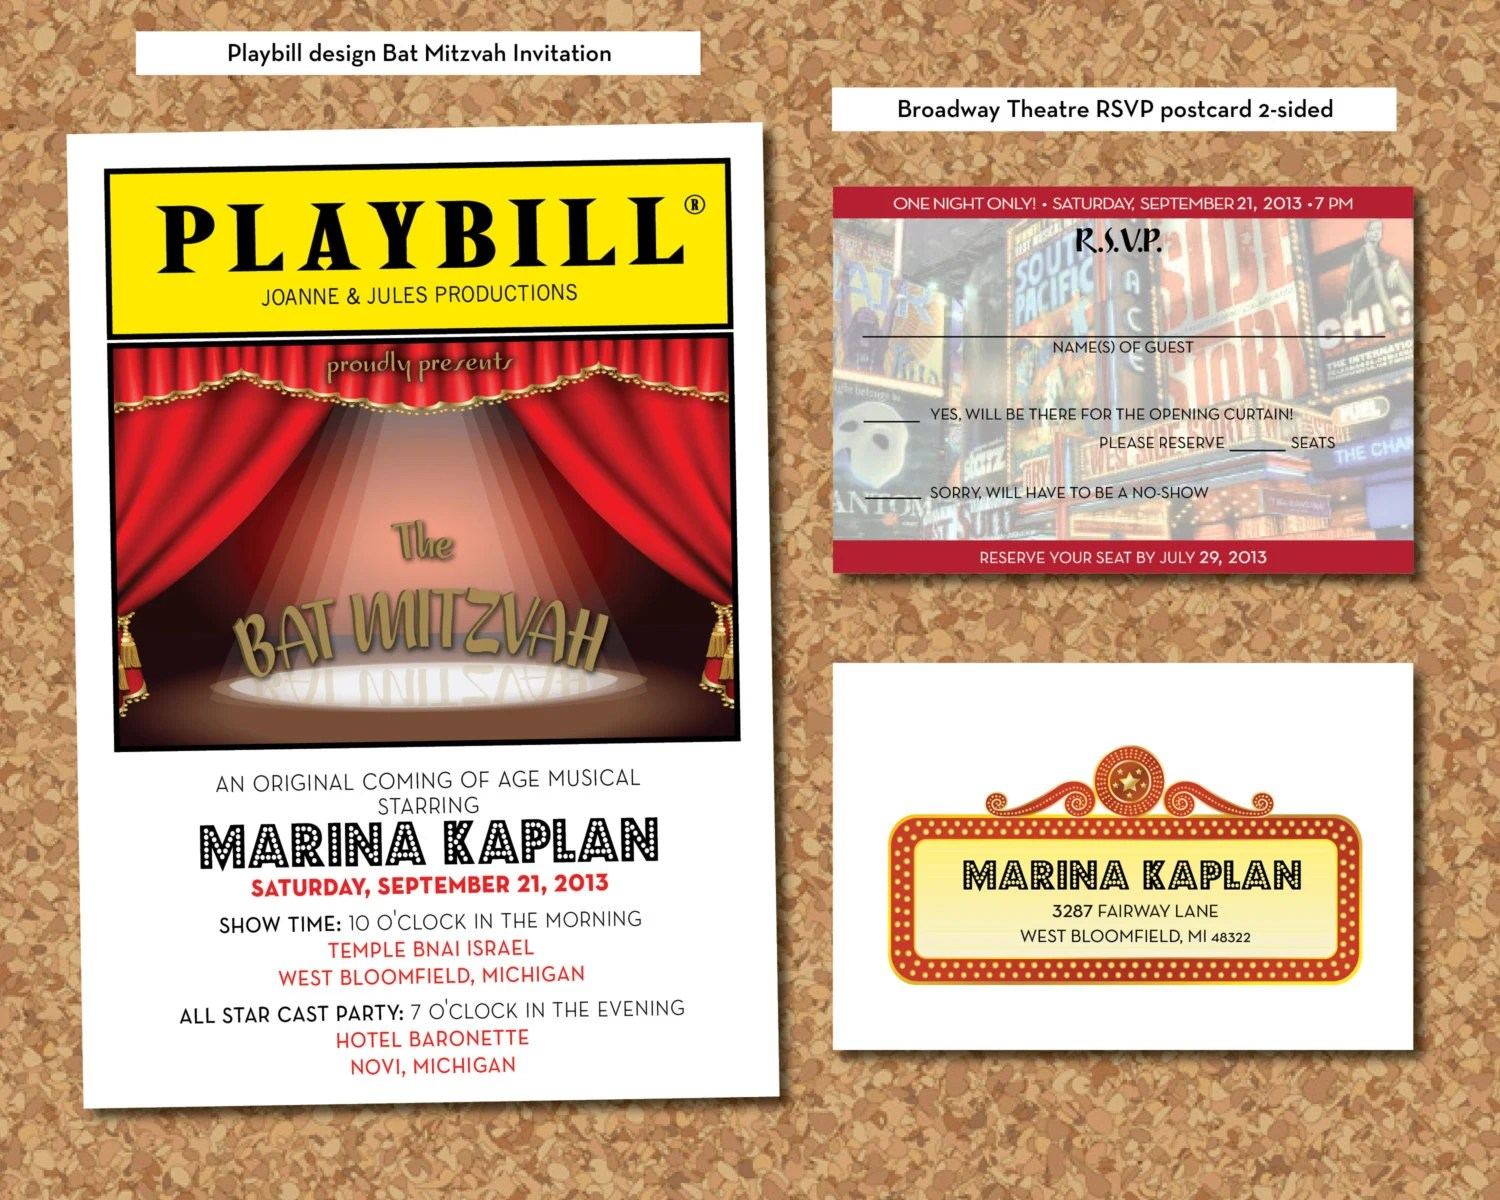 PLAYBILL Theater Bat Mitzvah Invitation & RSVP Postcard